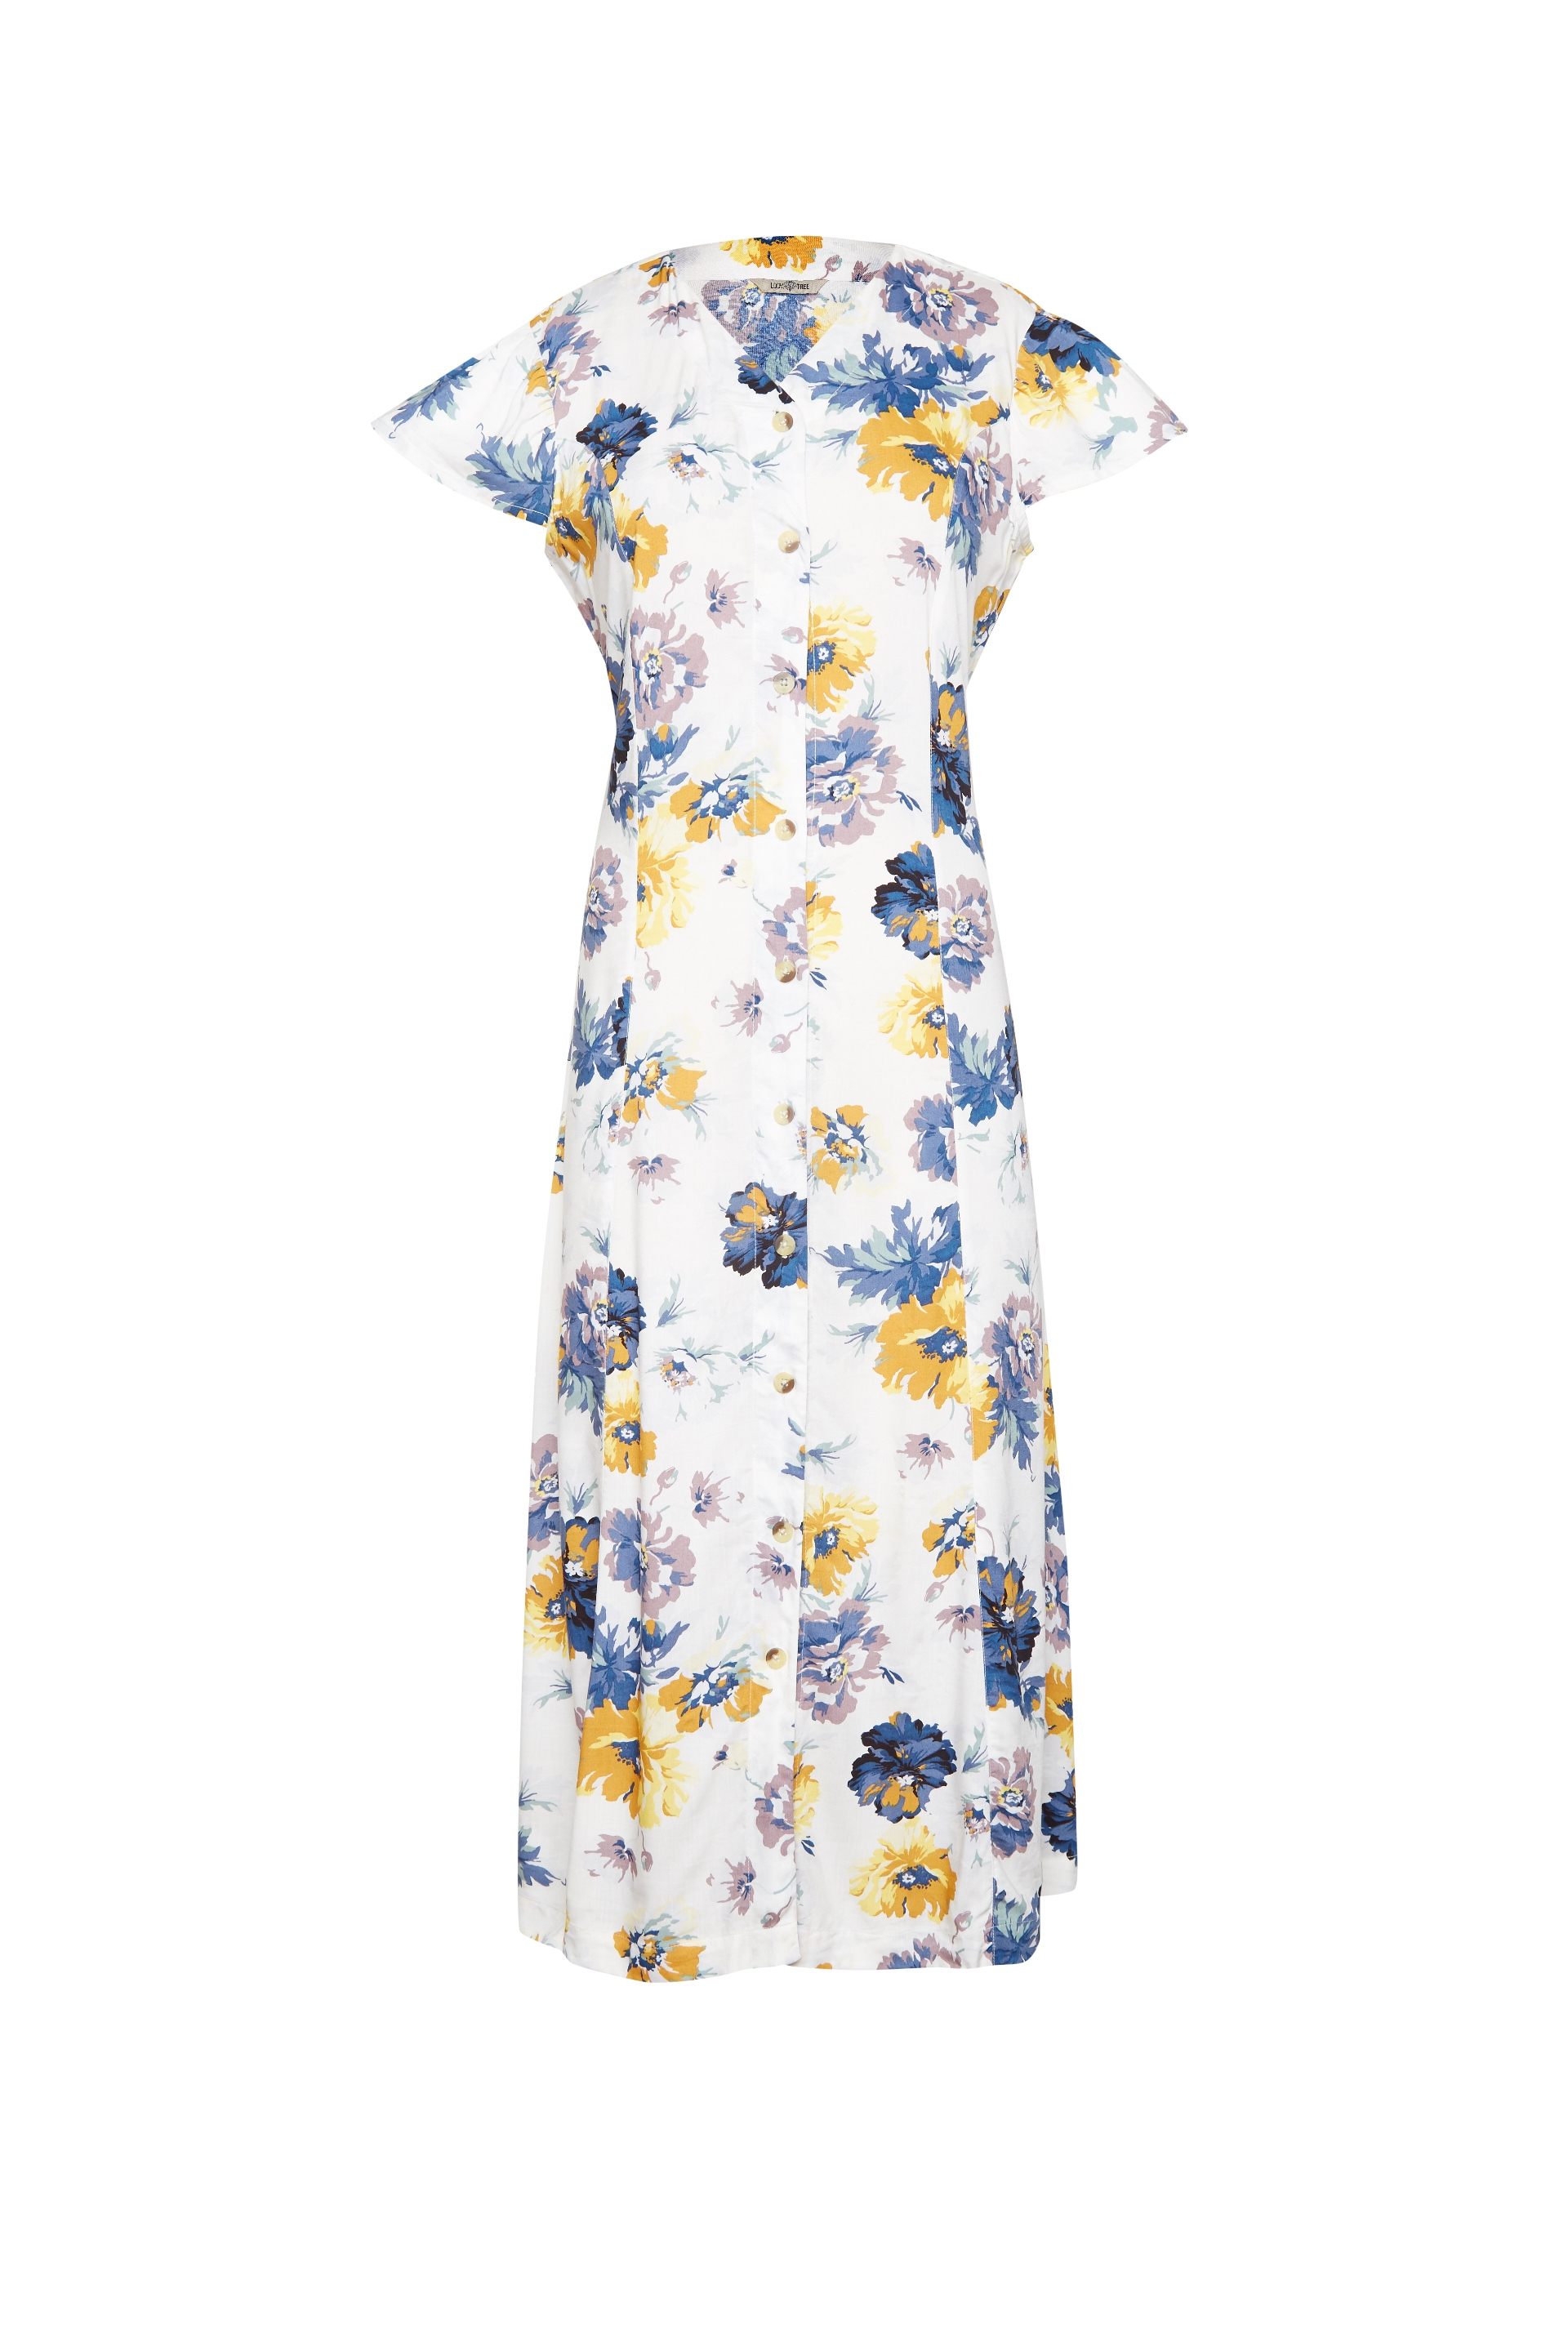 Loom Tree_Button Down Floral  Dress_MRP Rs. 2,799